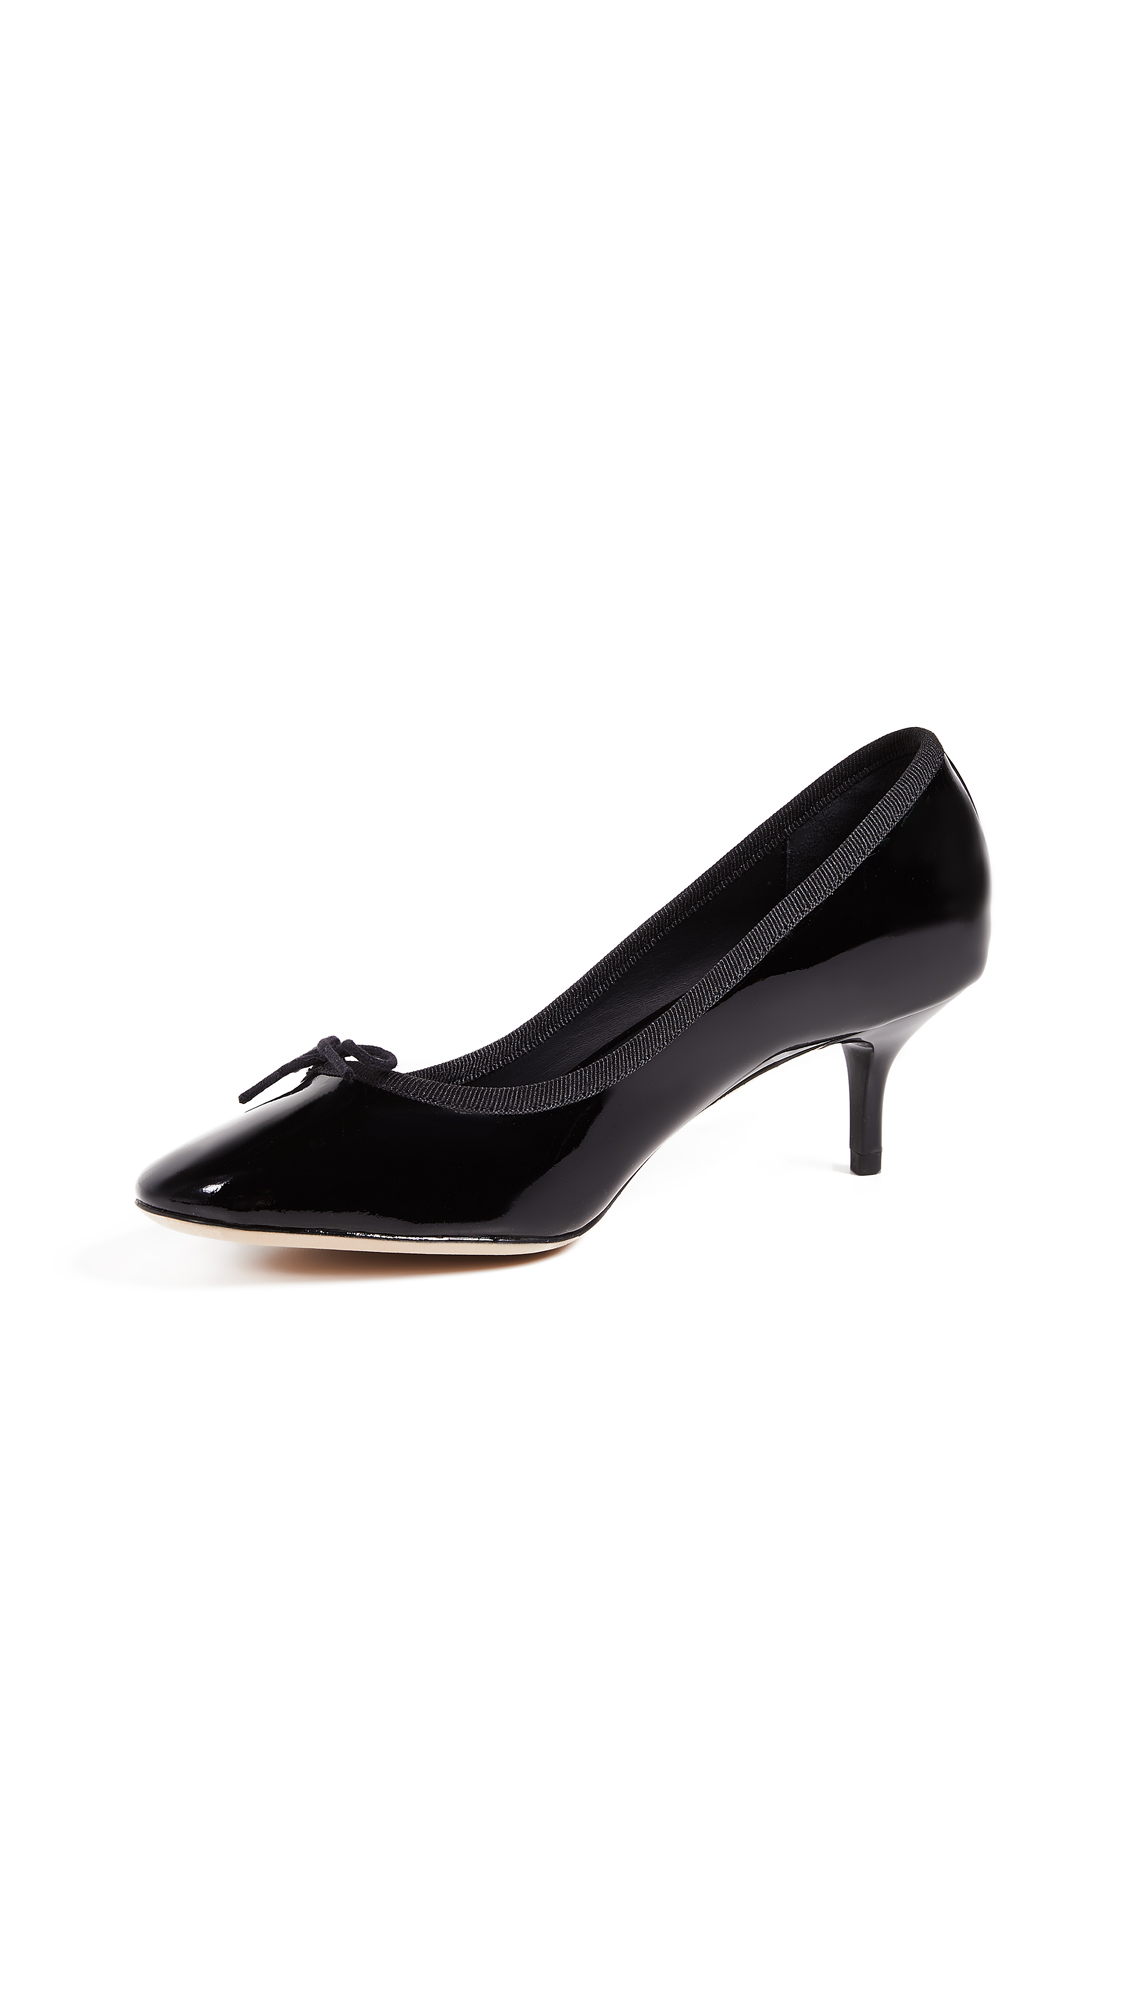 Repetto Gisele Ballerina Pumps